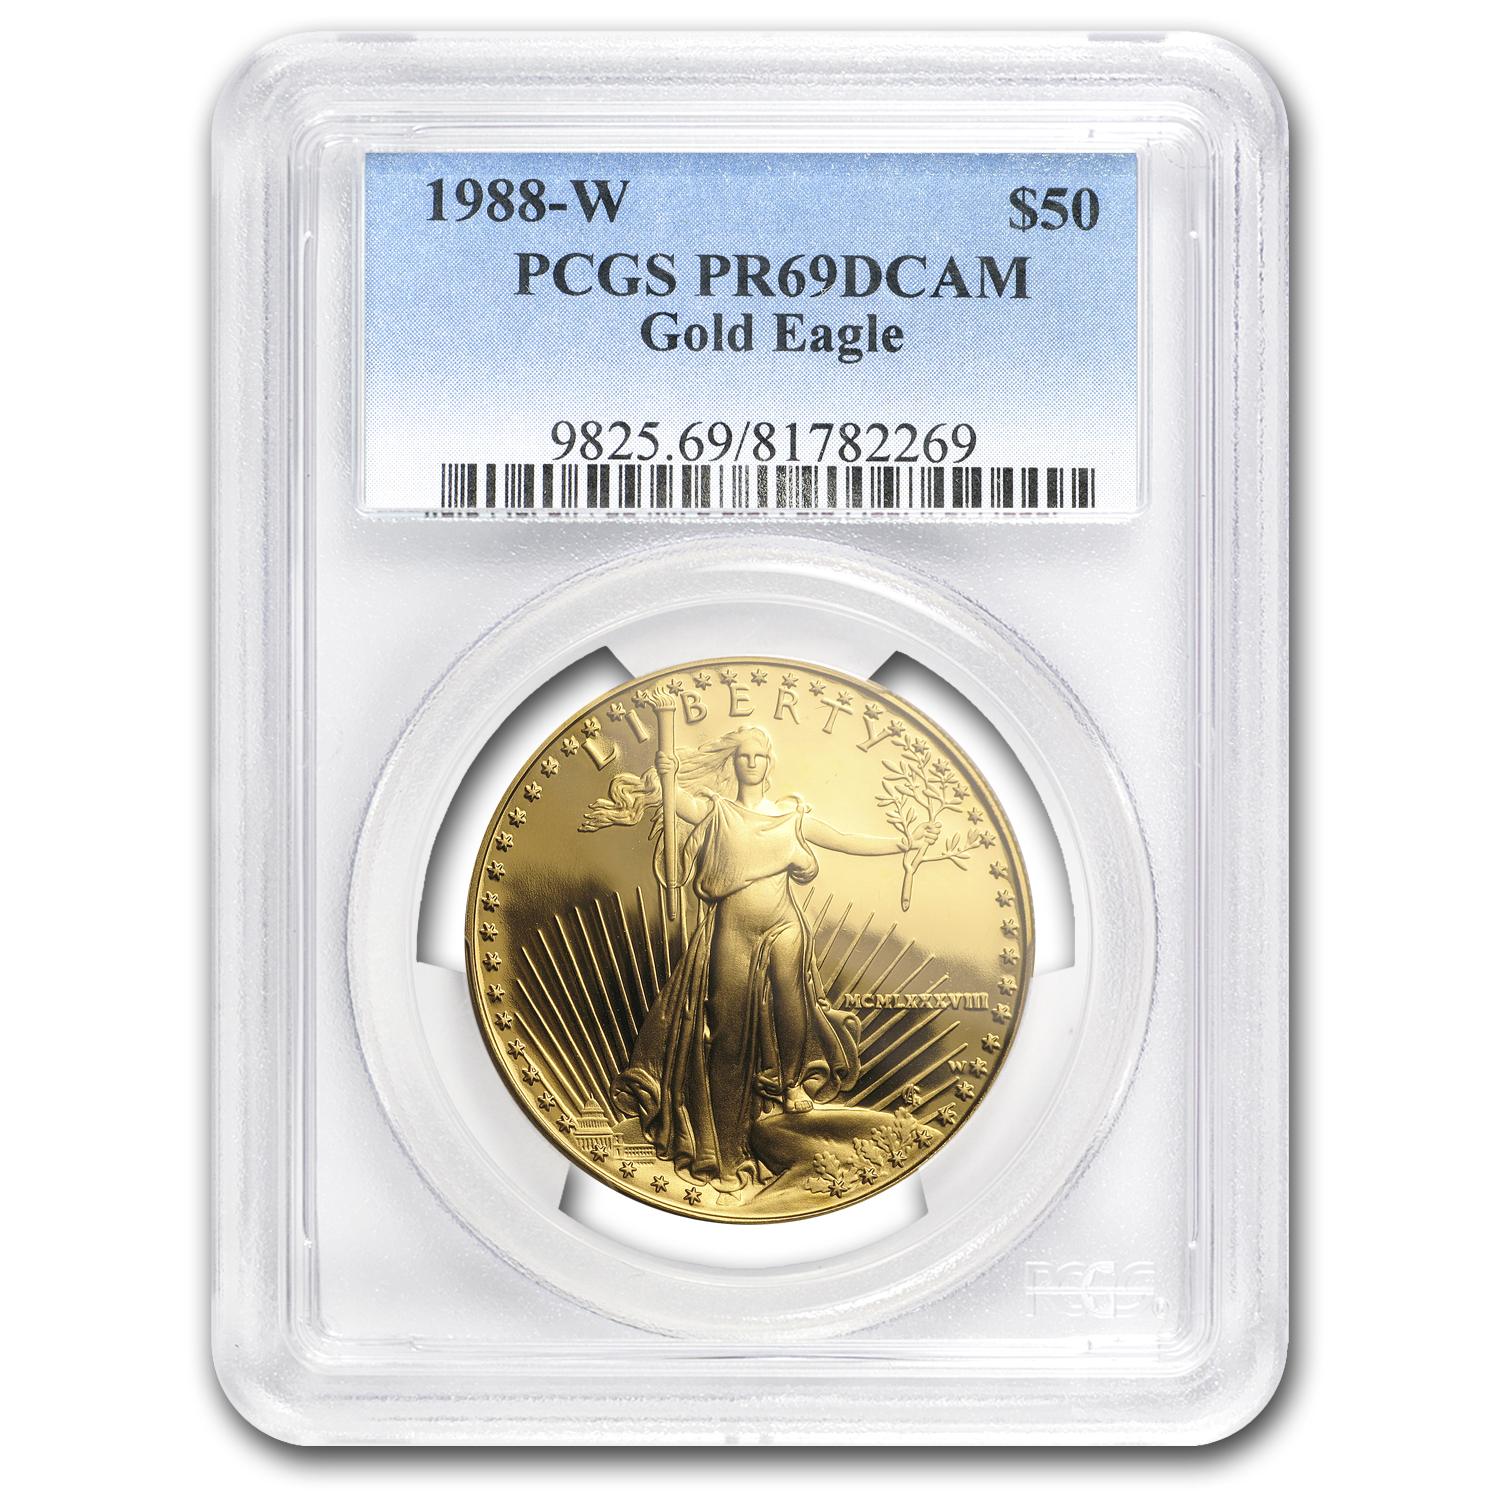 1988-W 1 oz Proof Gold American Eagle PR-69 PCGS